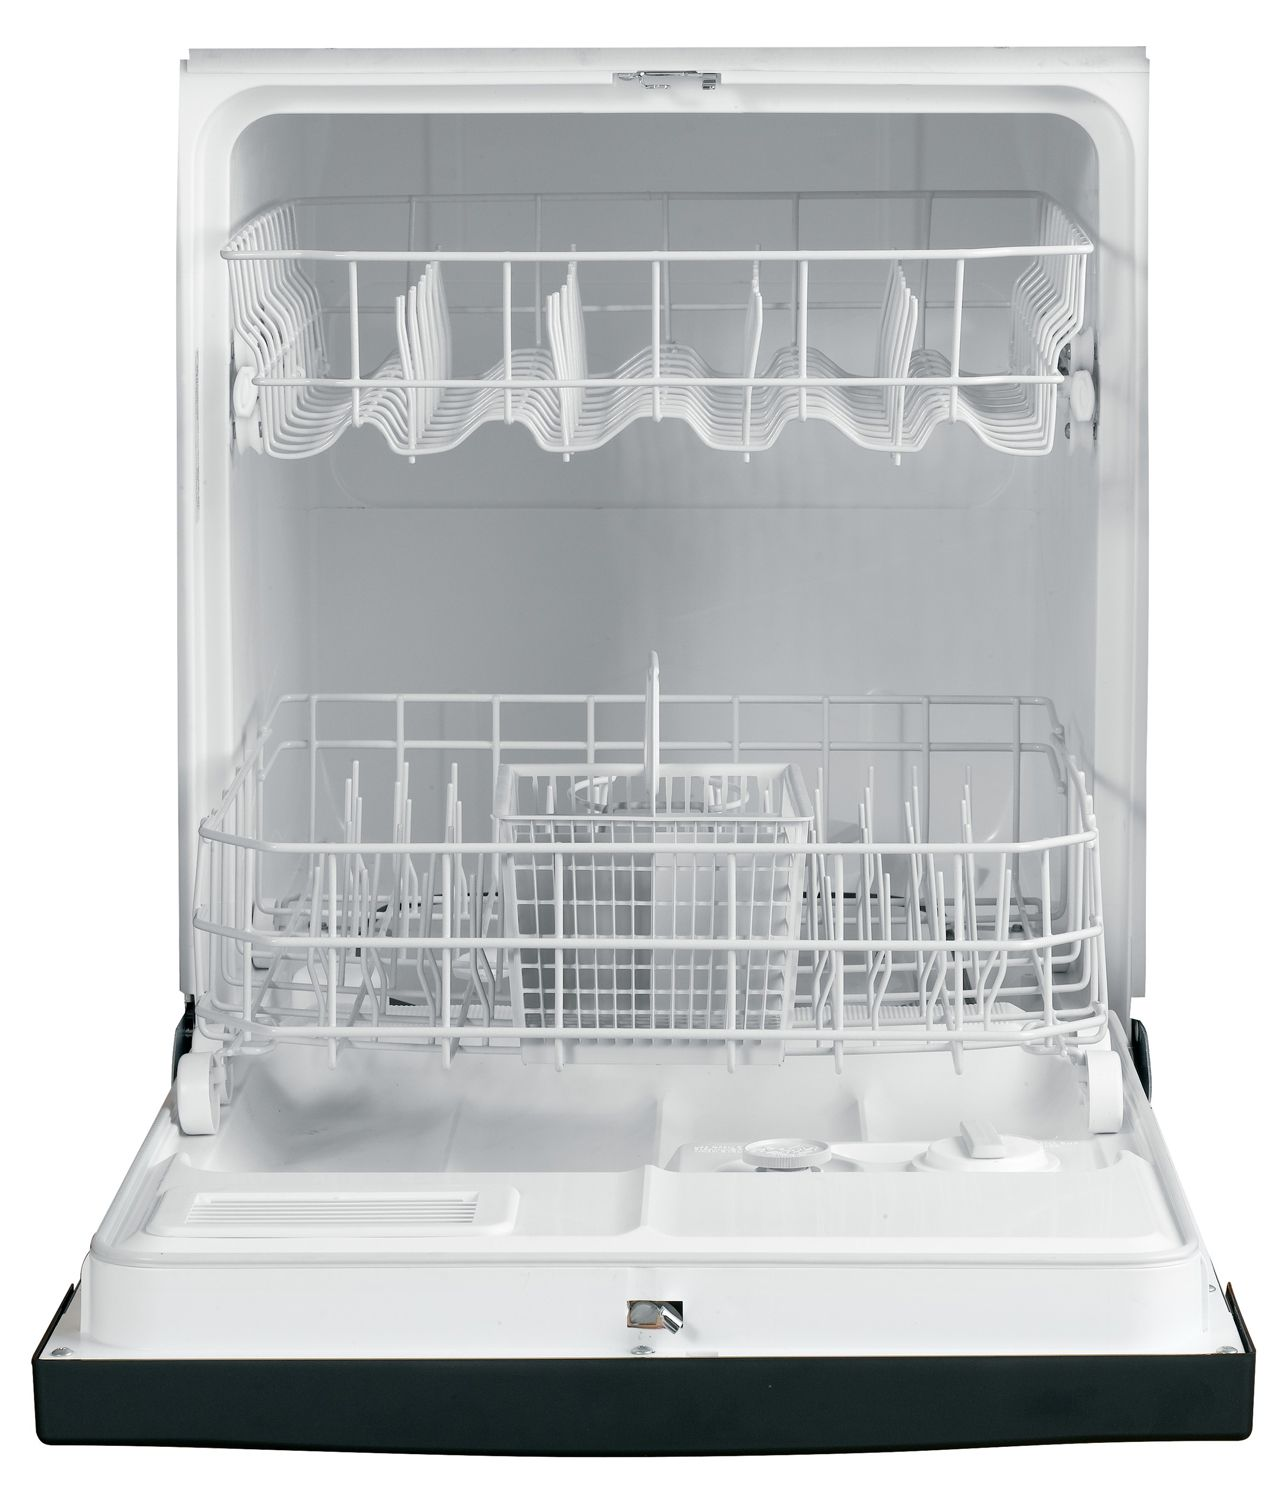 Ge Dishwahers Ge 24 Black Built In Dishwasher Gsd4000kbb